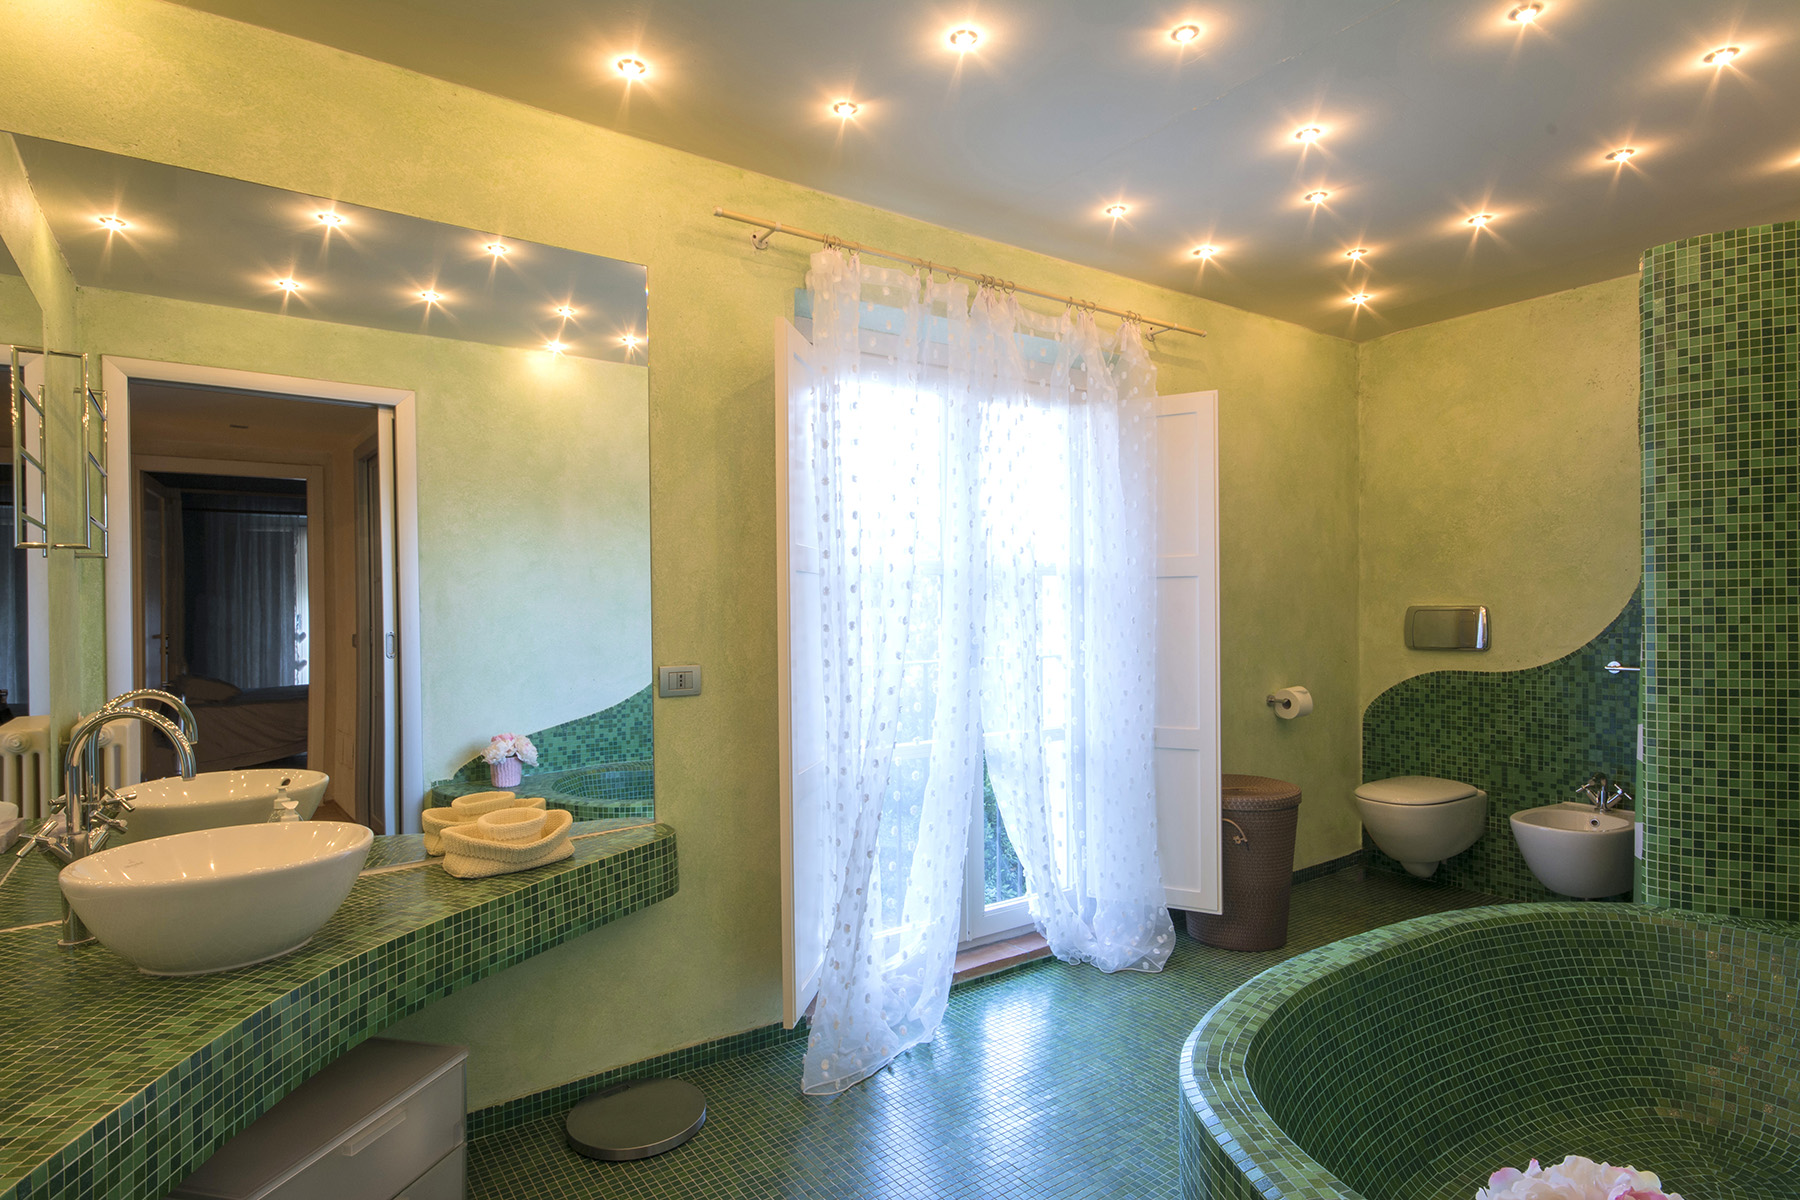 Additional photo for property listing at Adorable farmhouse in the Lucca country-side Via della Fornace Vicopelago, Lucca 55100 Italia